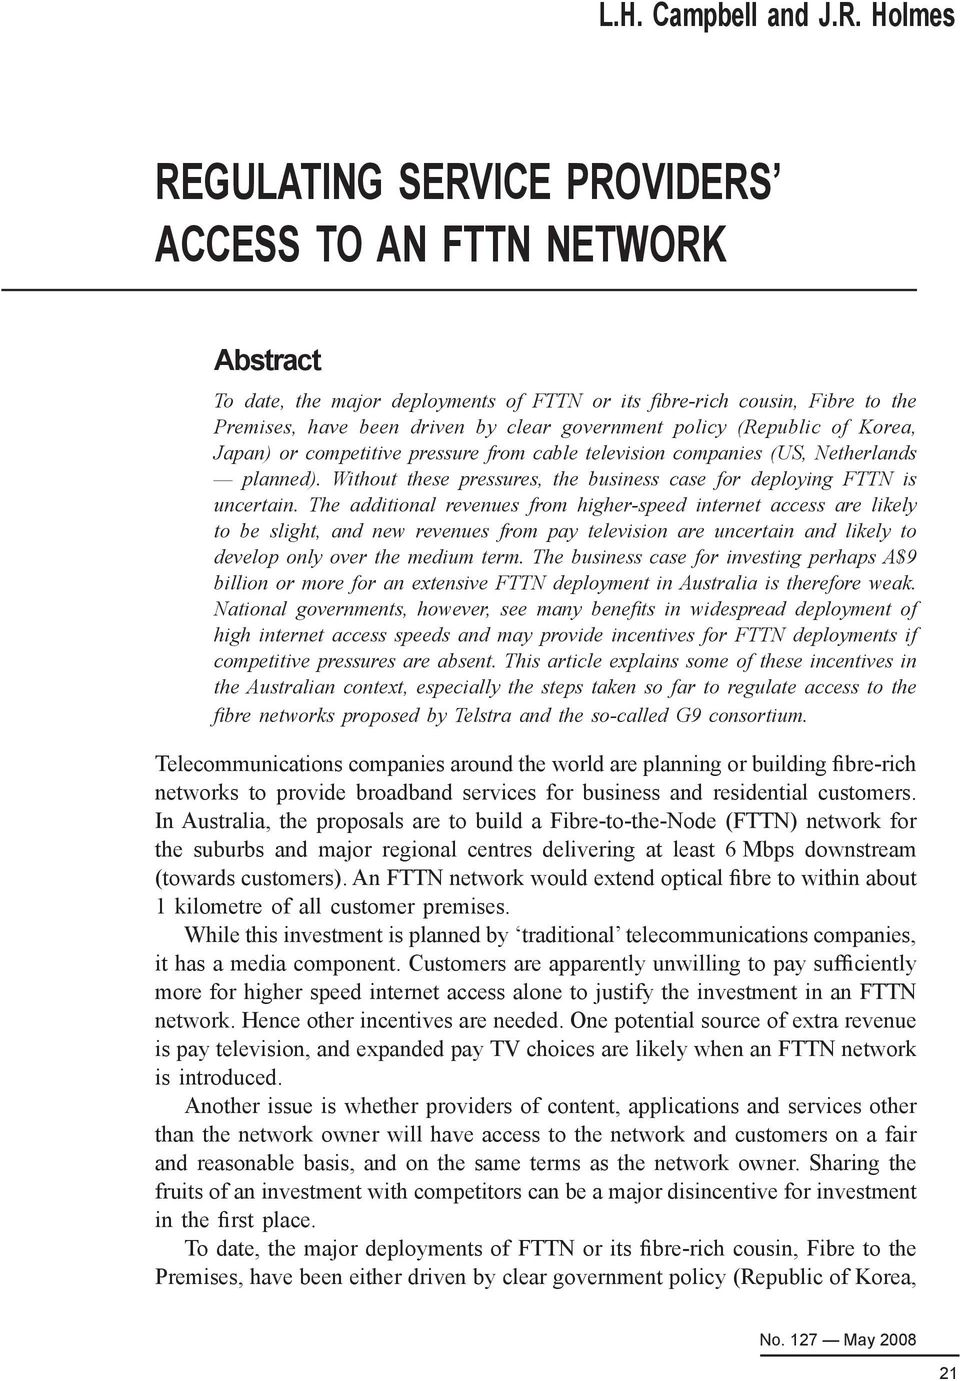 policy (Republic of Korea, Japan) or competitive pressure from cable television companies (US, Netherlands planned). Without these pressures, the business case for deploying FTTN is uncertain.